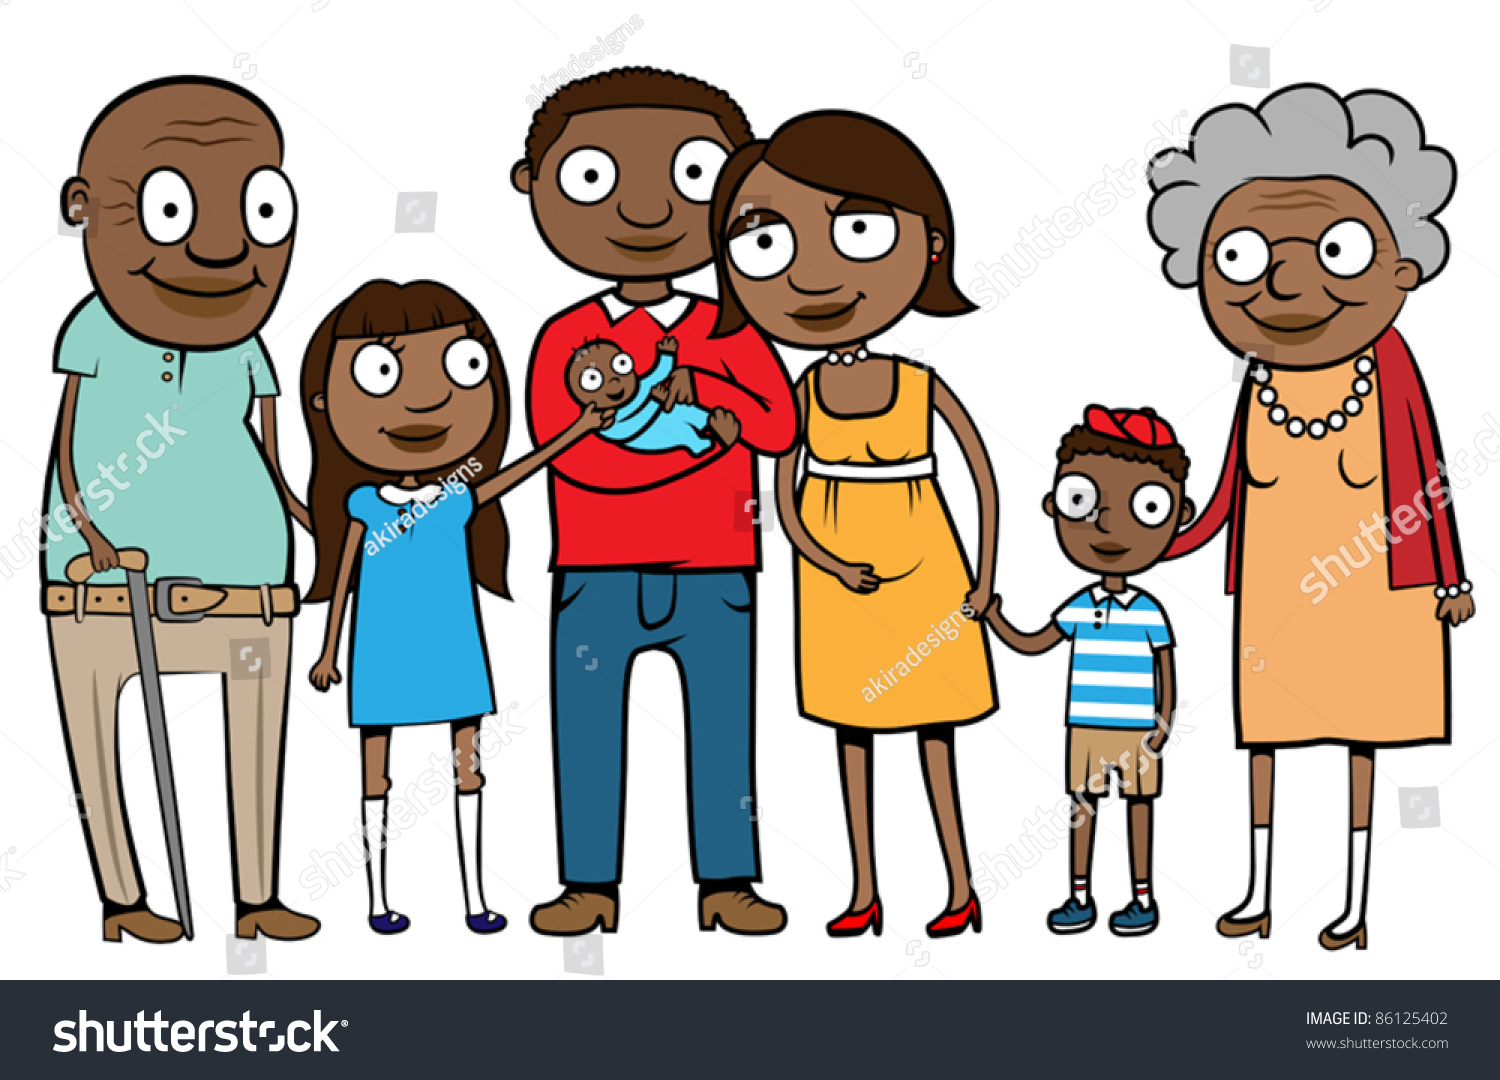 Big Cartoon Black Ethnic Family Parents Stock Vector 86125402 ...